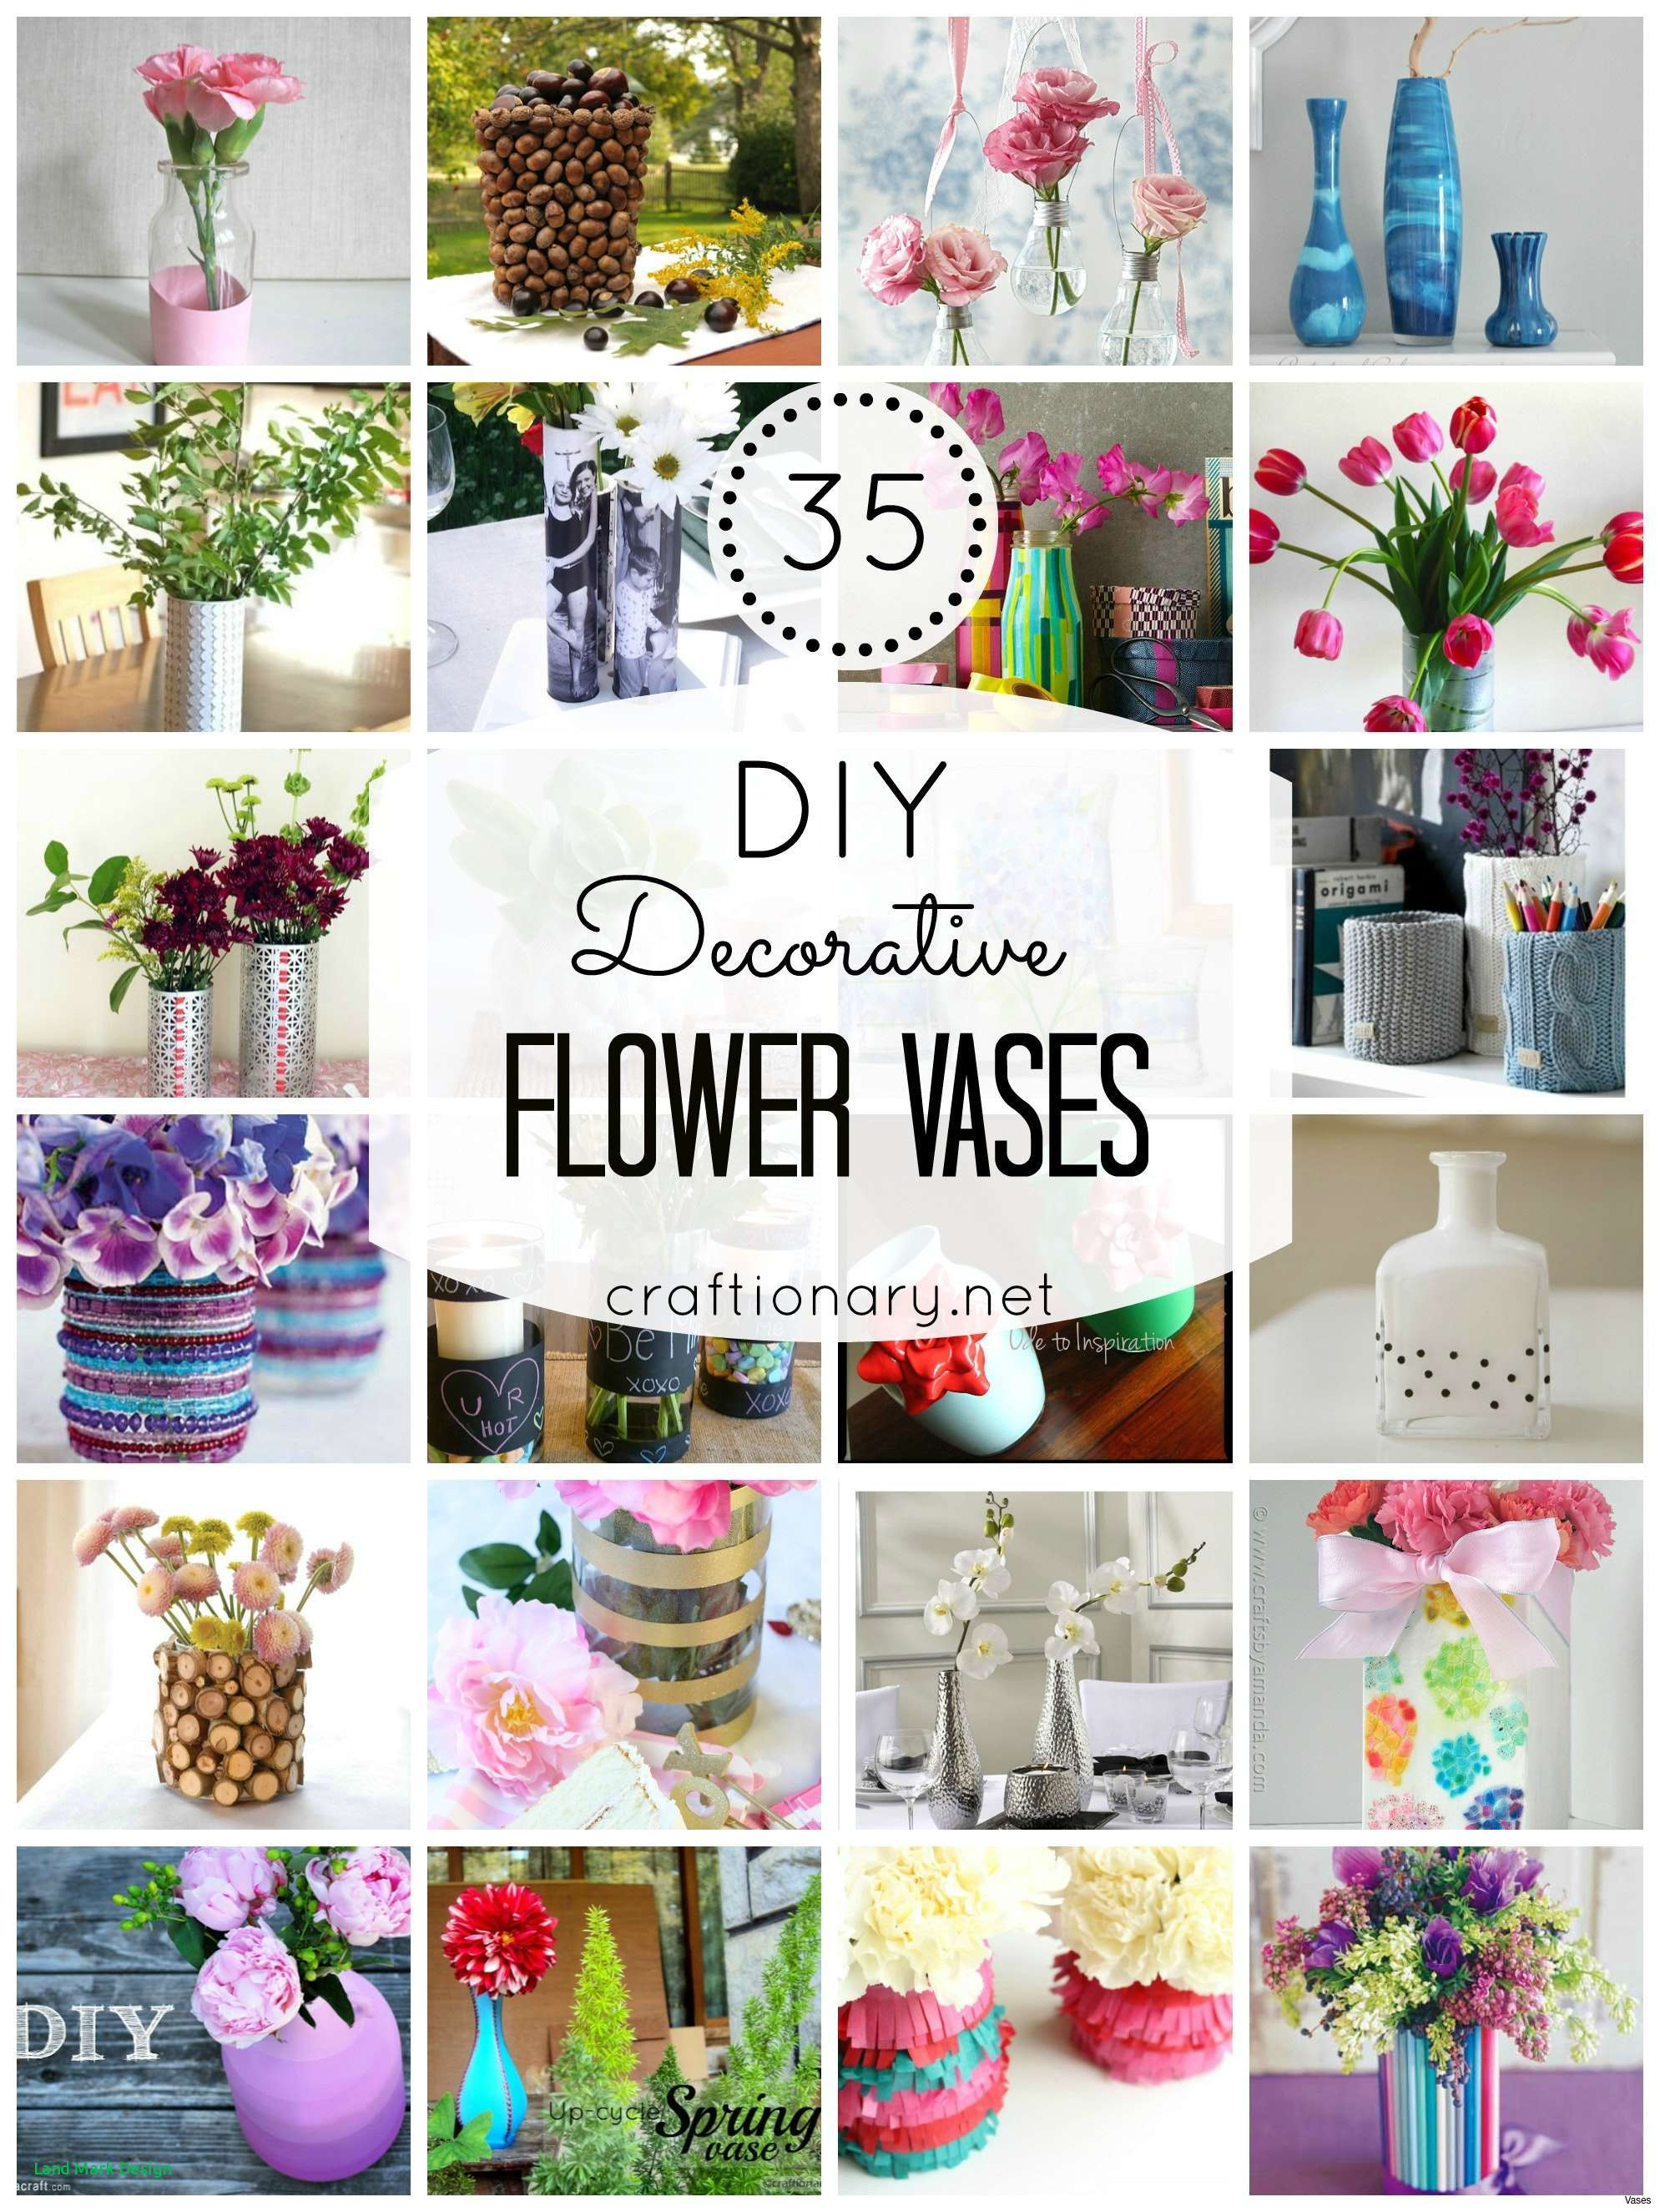 vase painting ideas of diy painting ideas home design throughout diy flower vasesh vases vase so i decided to share some super creative ways make found maxresdefaulth vases diy flower vase i 0d painting ideas